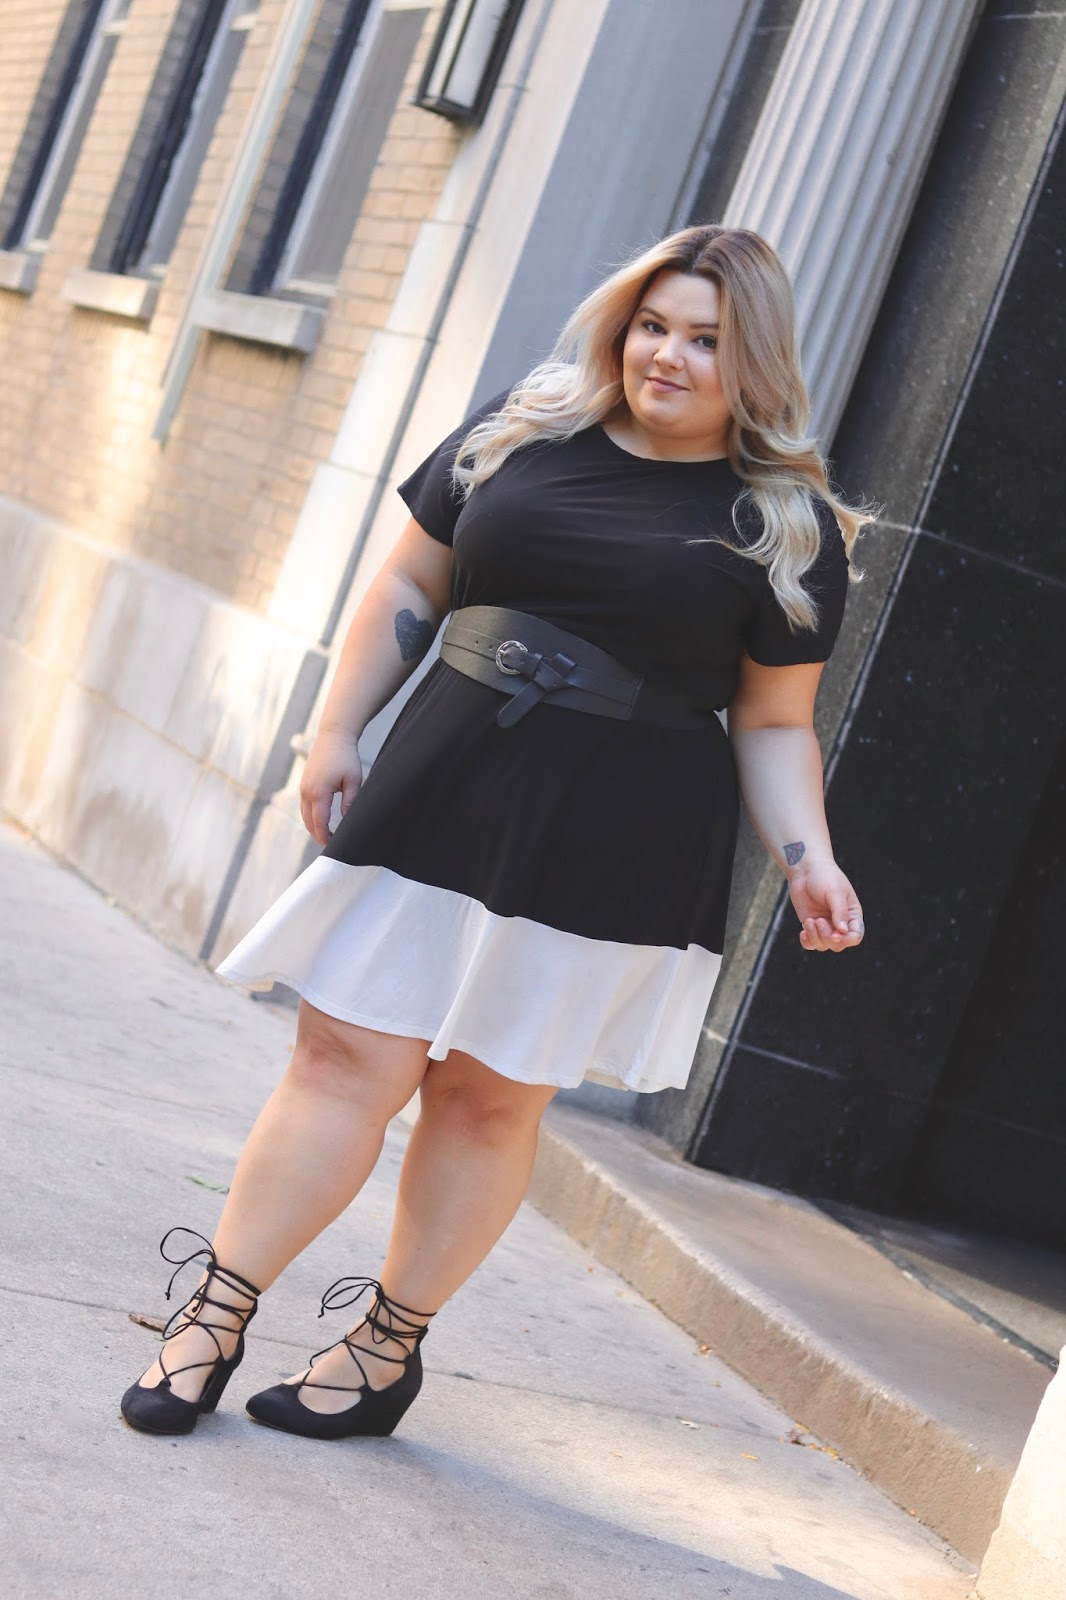 natalie in the city, dream big curvy girl fashion & beauty conference, the curvy con, full figured fashion week, the curvy fashionista, plus model magazine, fabulous, skorch magazine, plus size fashion, affordable plus size clothing, natalie craig, Chicago fashion blogger, plus size fashion blogger, color block dress, office attire, business casual plus size